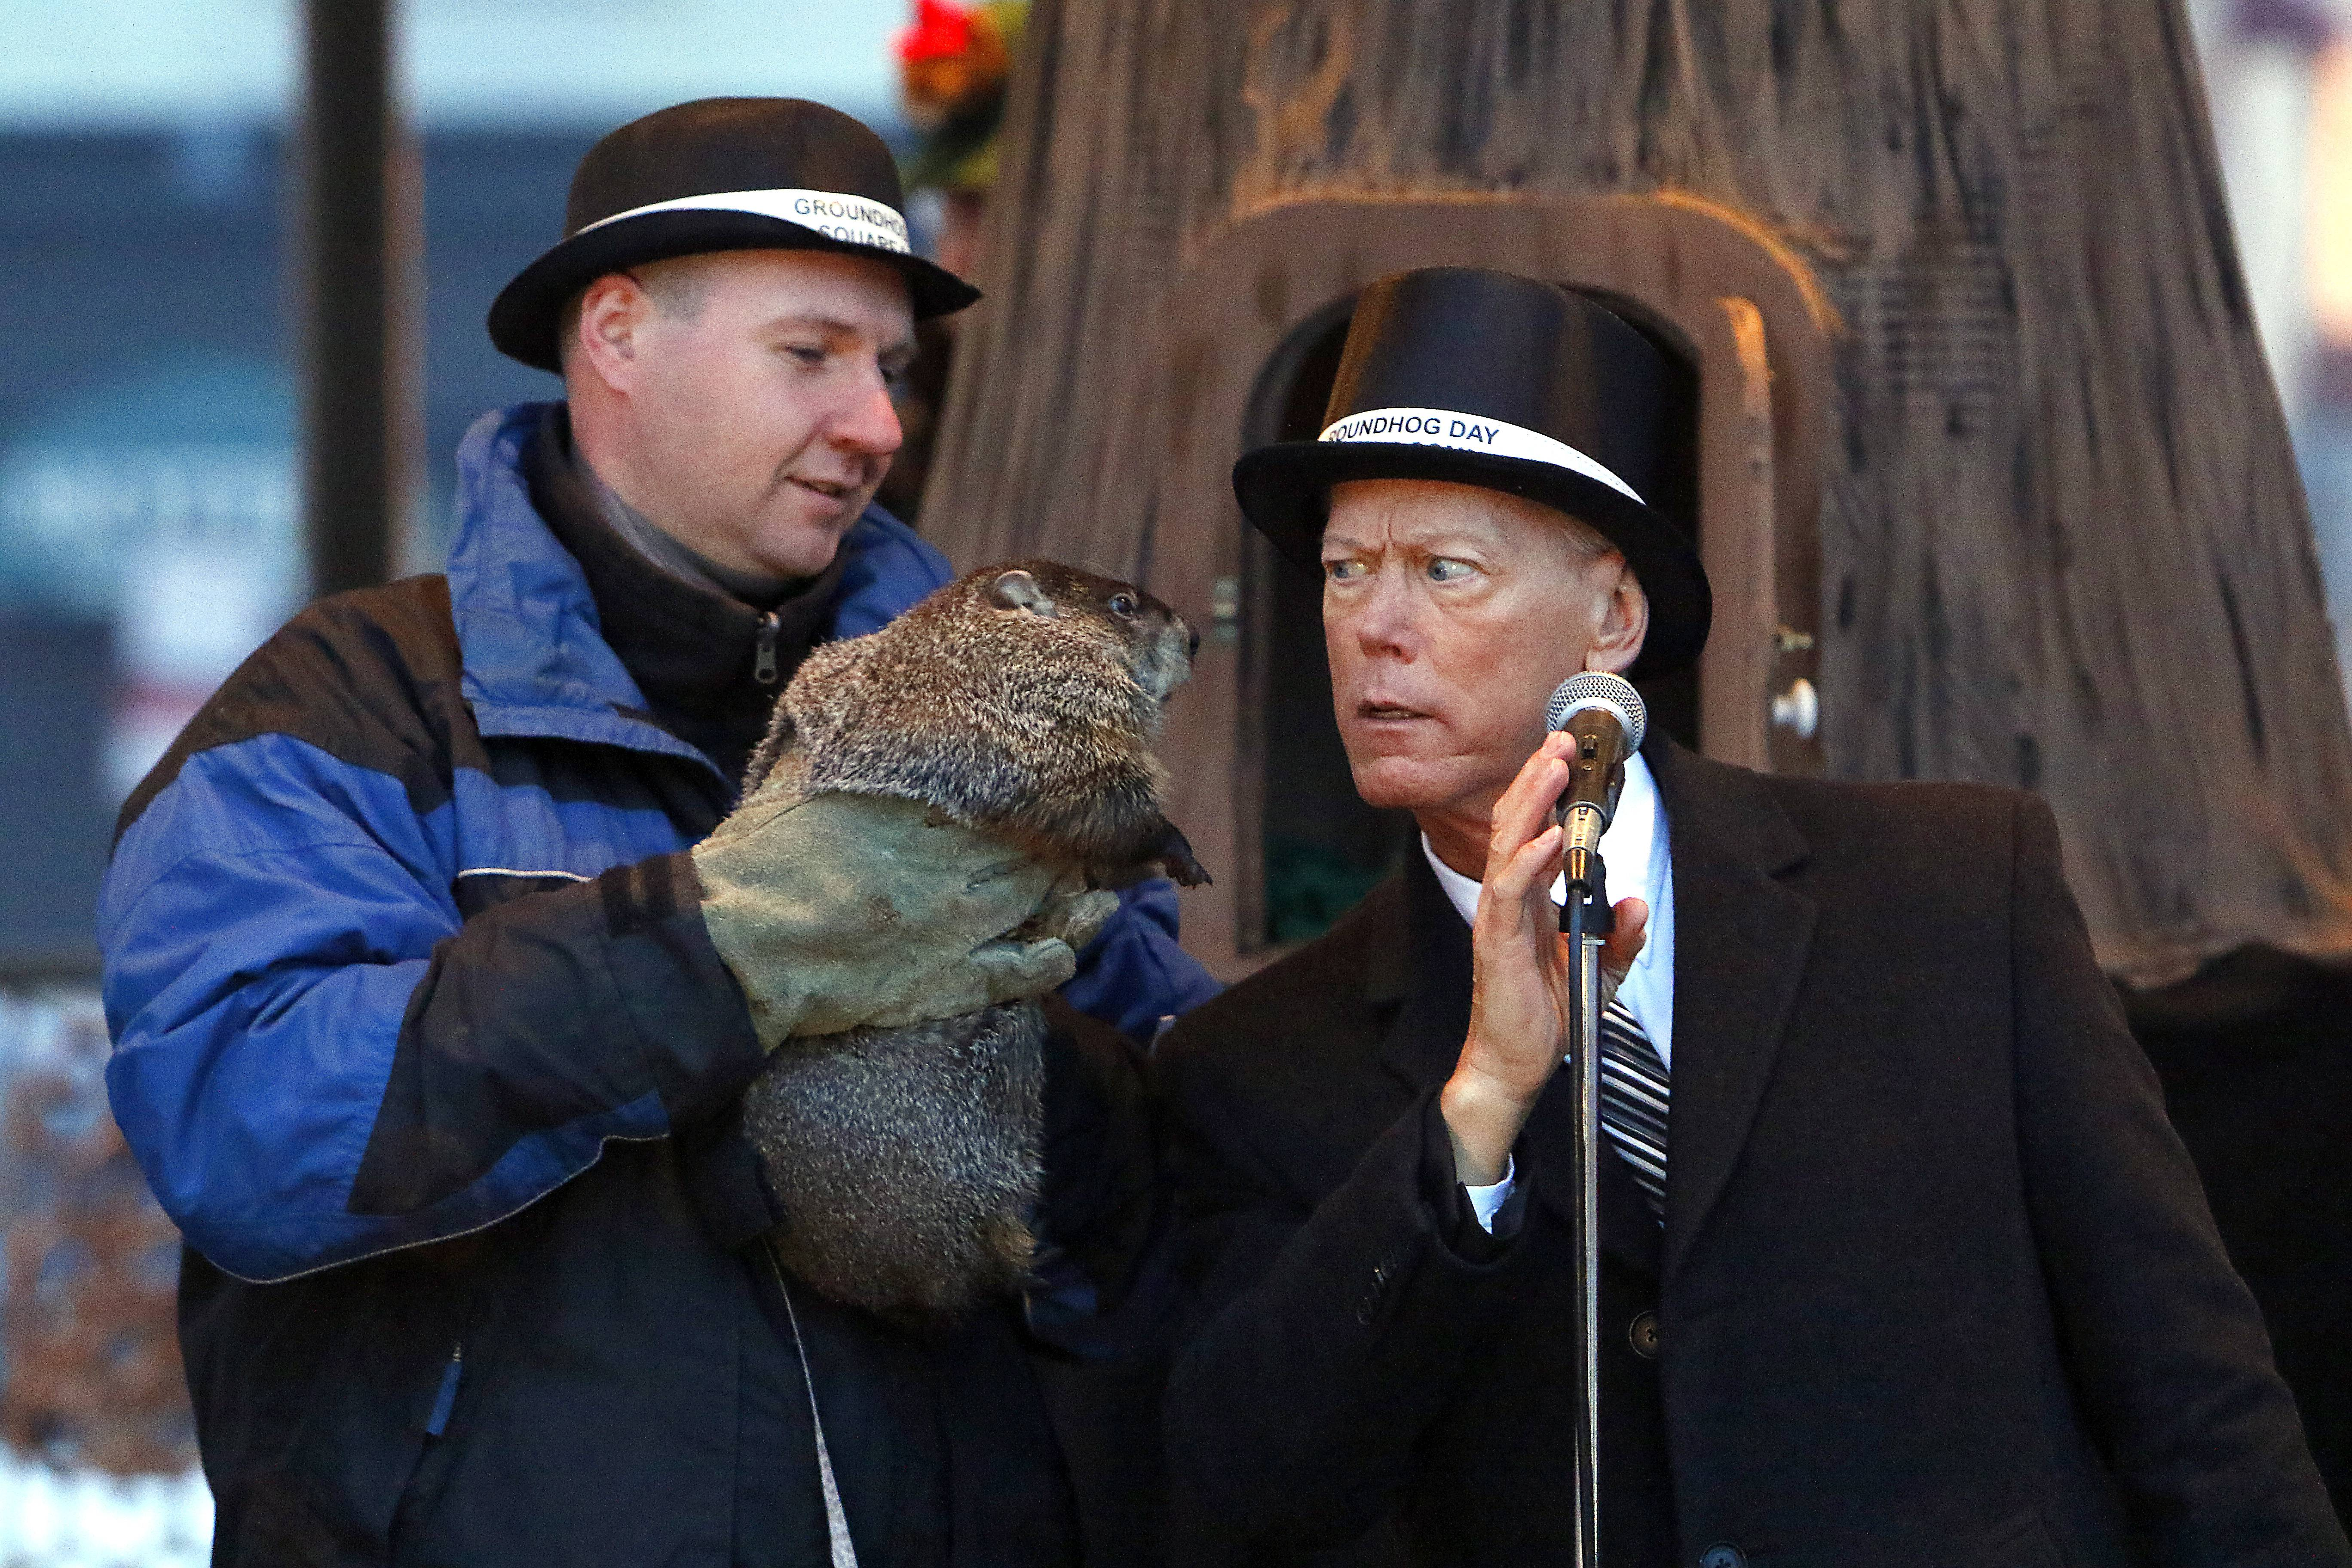 Woodstock Mayor Brian Sager, right, listens intently as he gets the word from Woodstock Willy that he did not see his shadow Tuesday during the annual Groundhog Day groundhog prognostication in historic Woodstock Square. Willy is being held by Mark Szafran of Animal Rentals in Chicago.